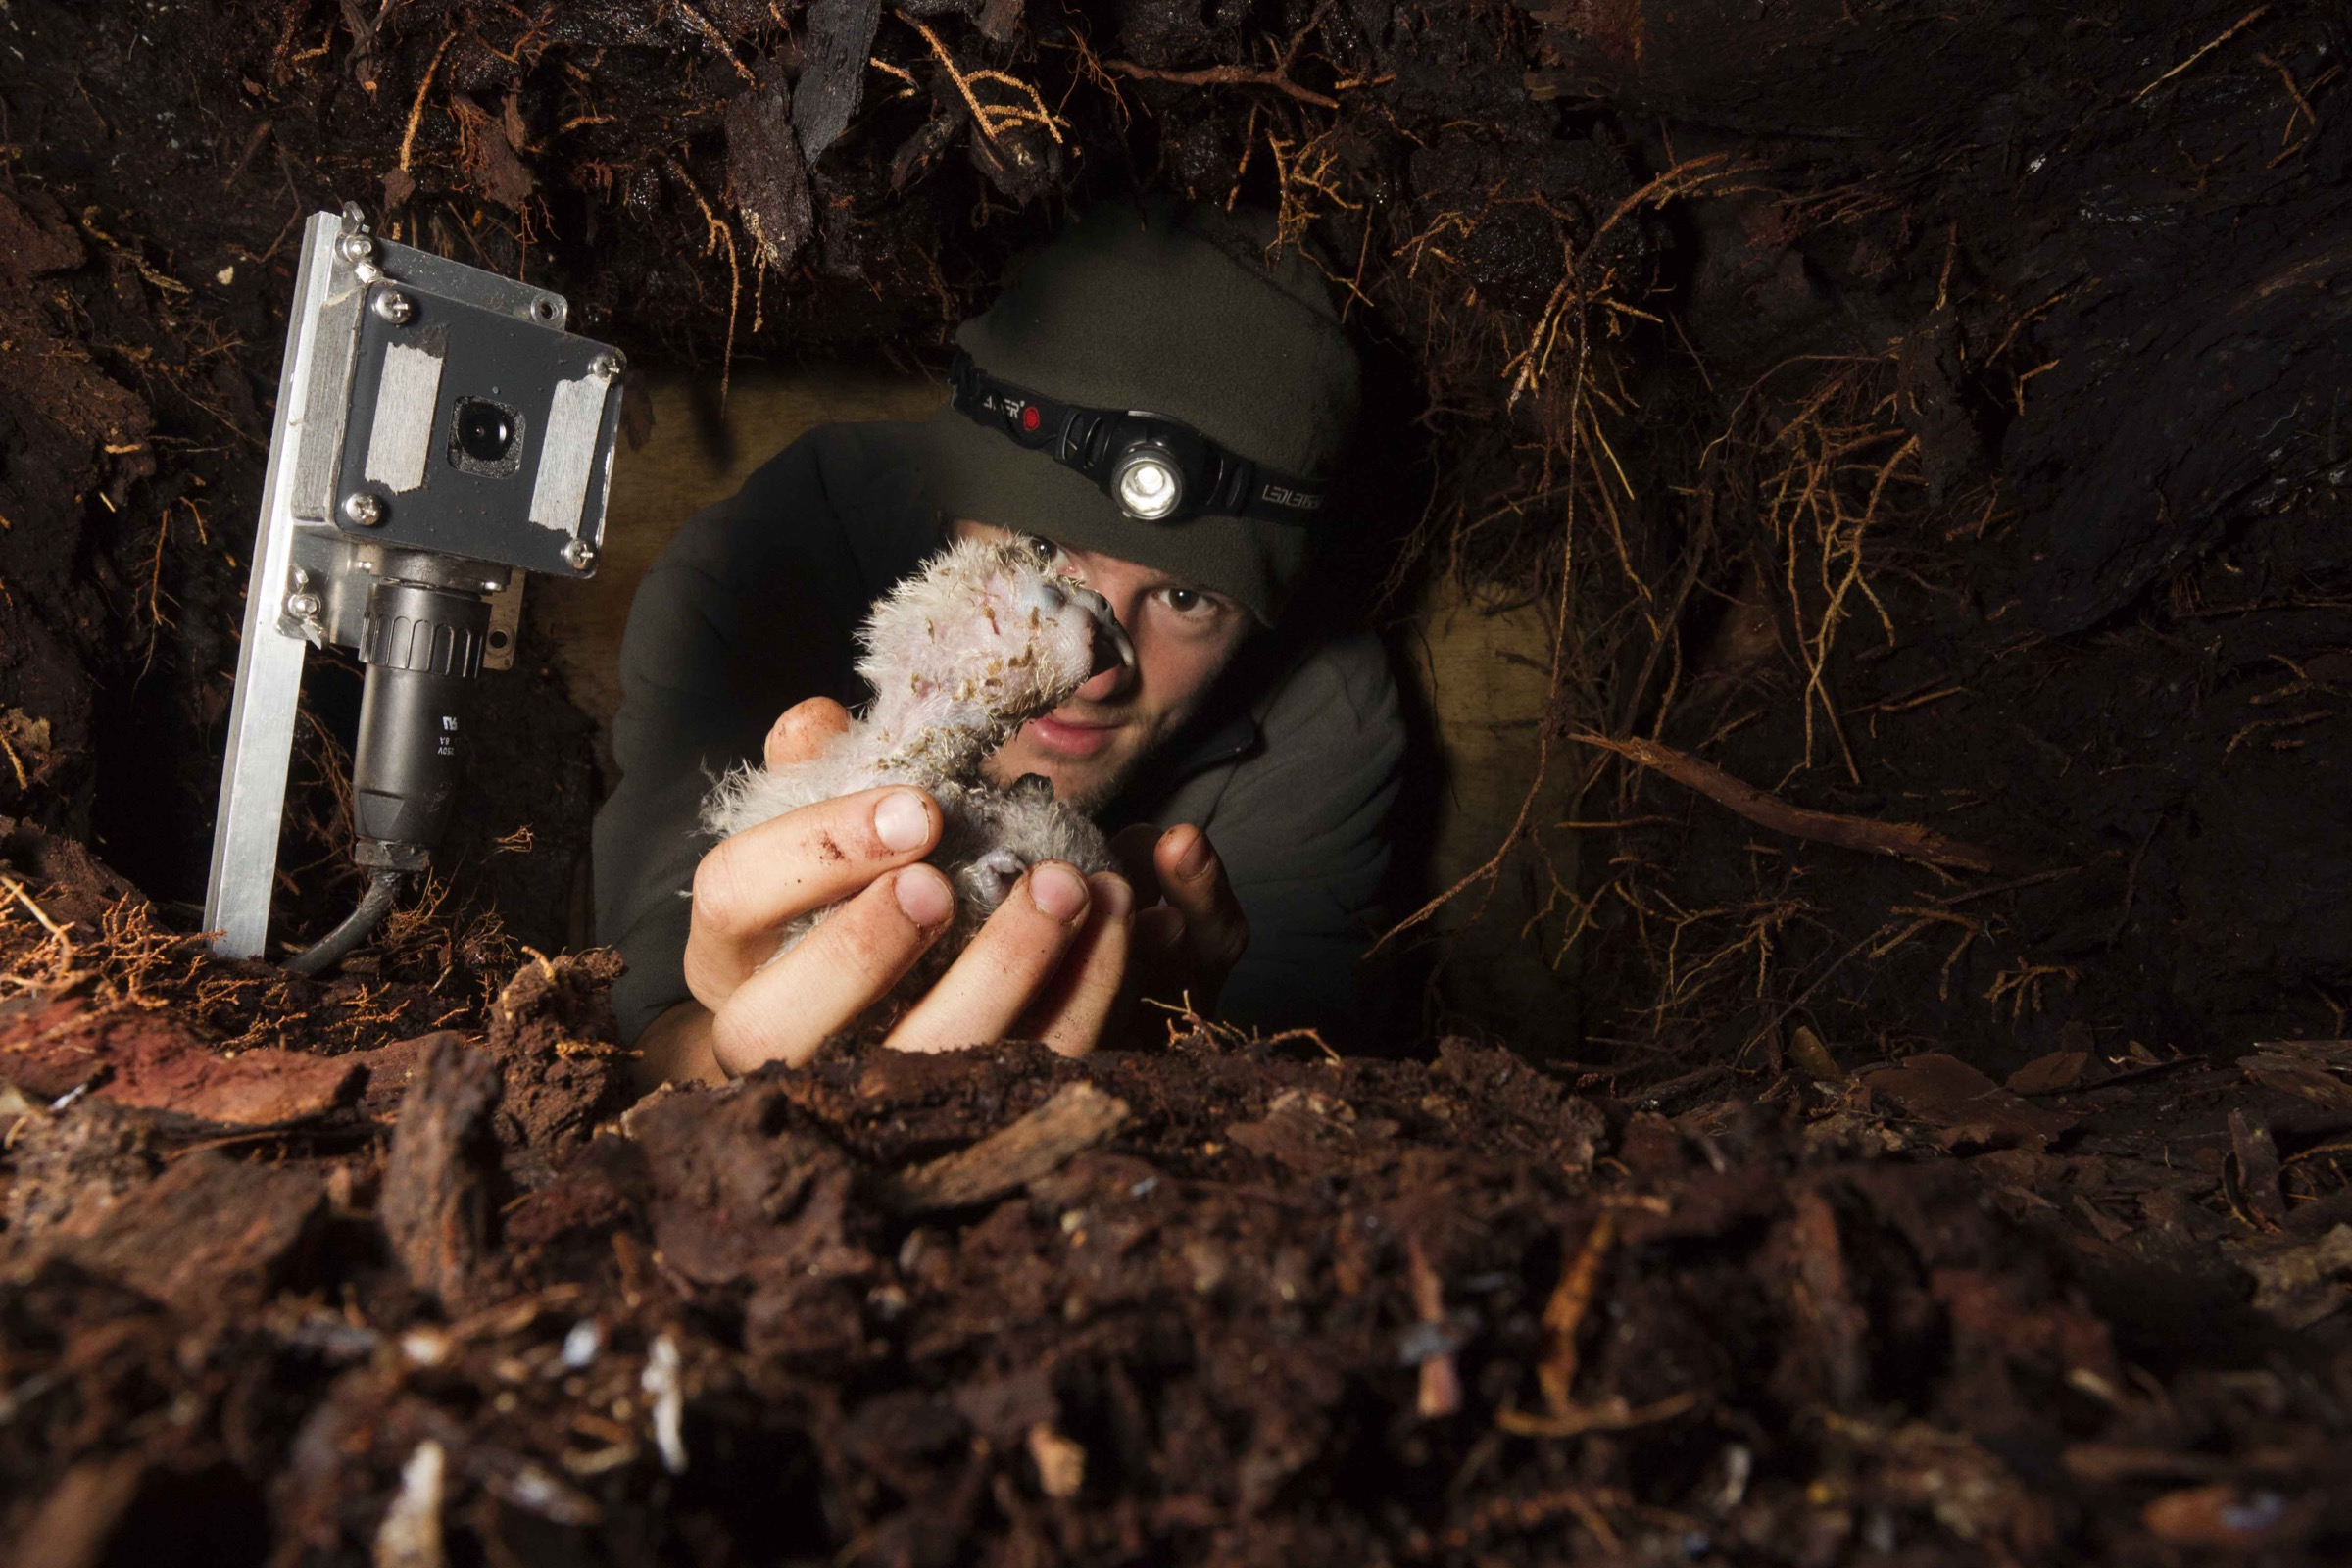 Kakapo Ranger Tim Raemaekers picks up a kakapo chick inside its underground nest. Since parental care is often lacking, an infrared camera is placed inside each nest to monitor how often and how much the female feeds each chick.